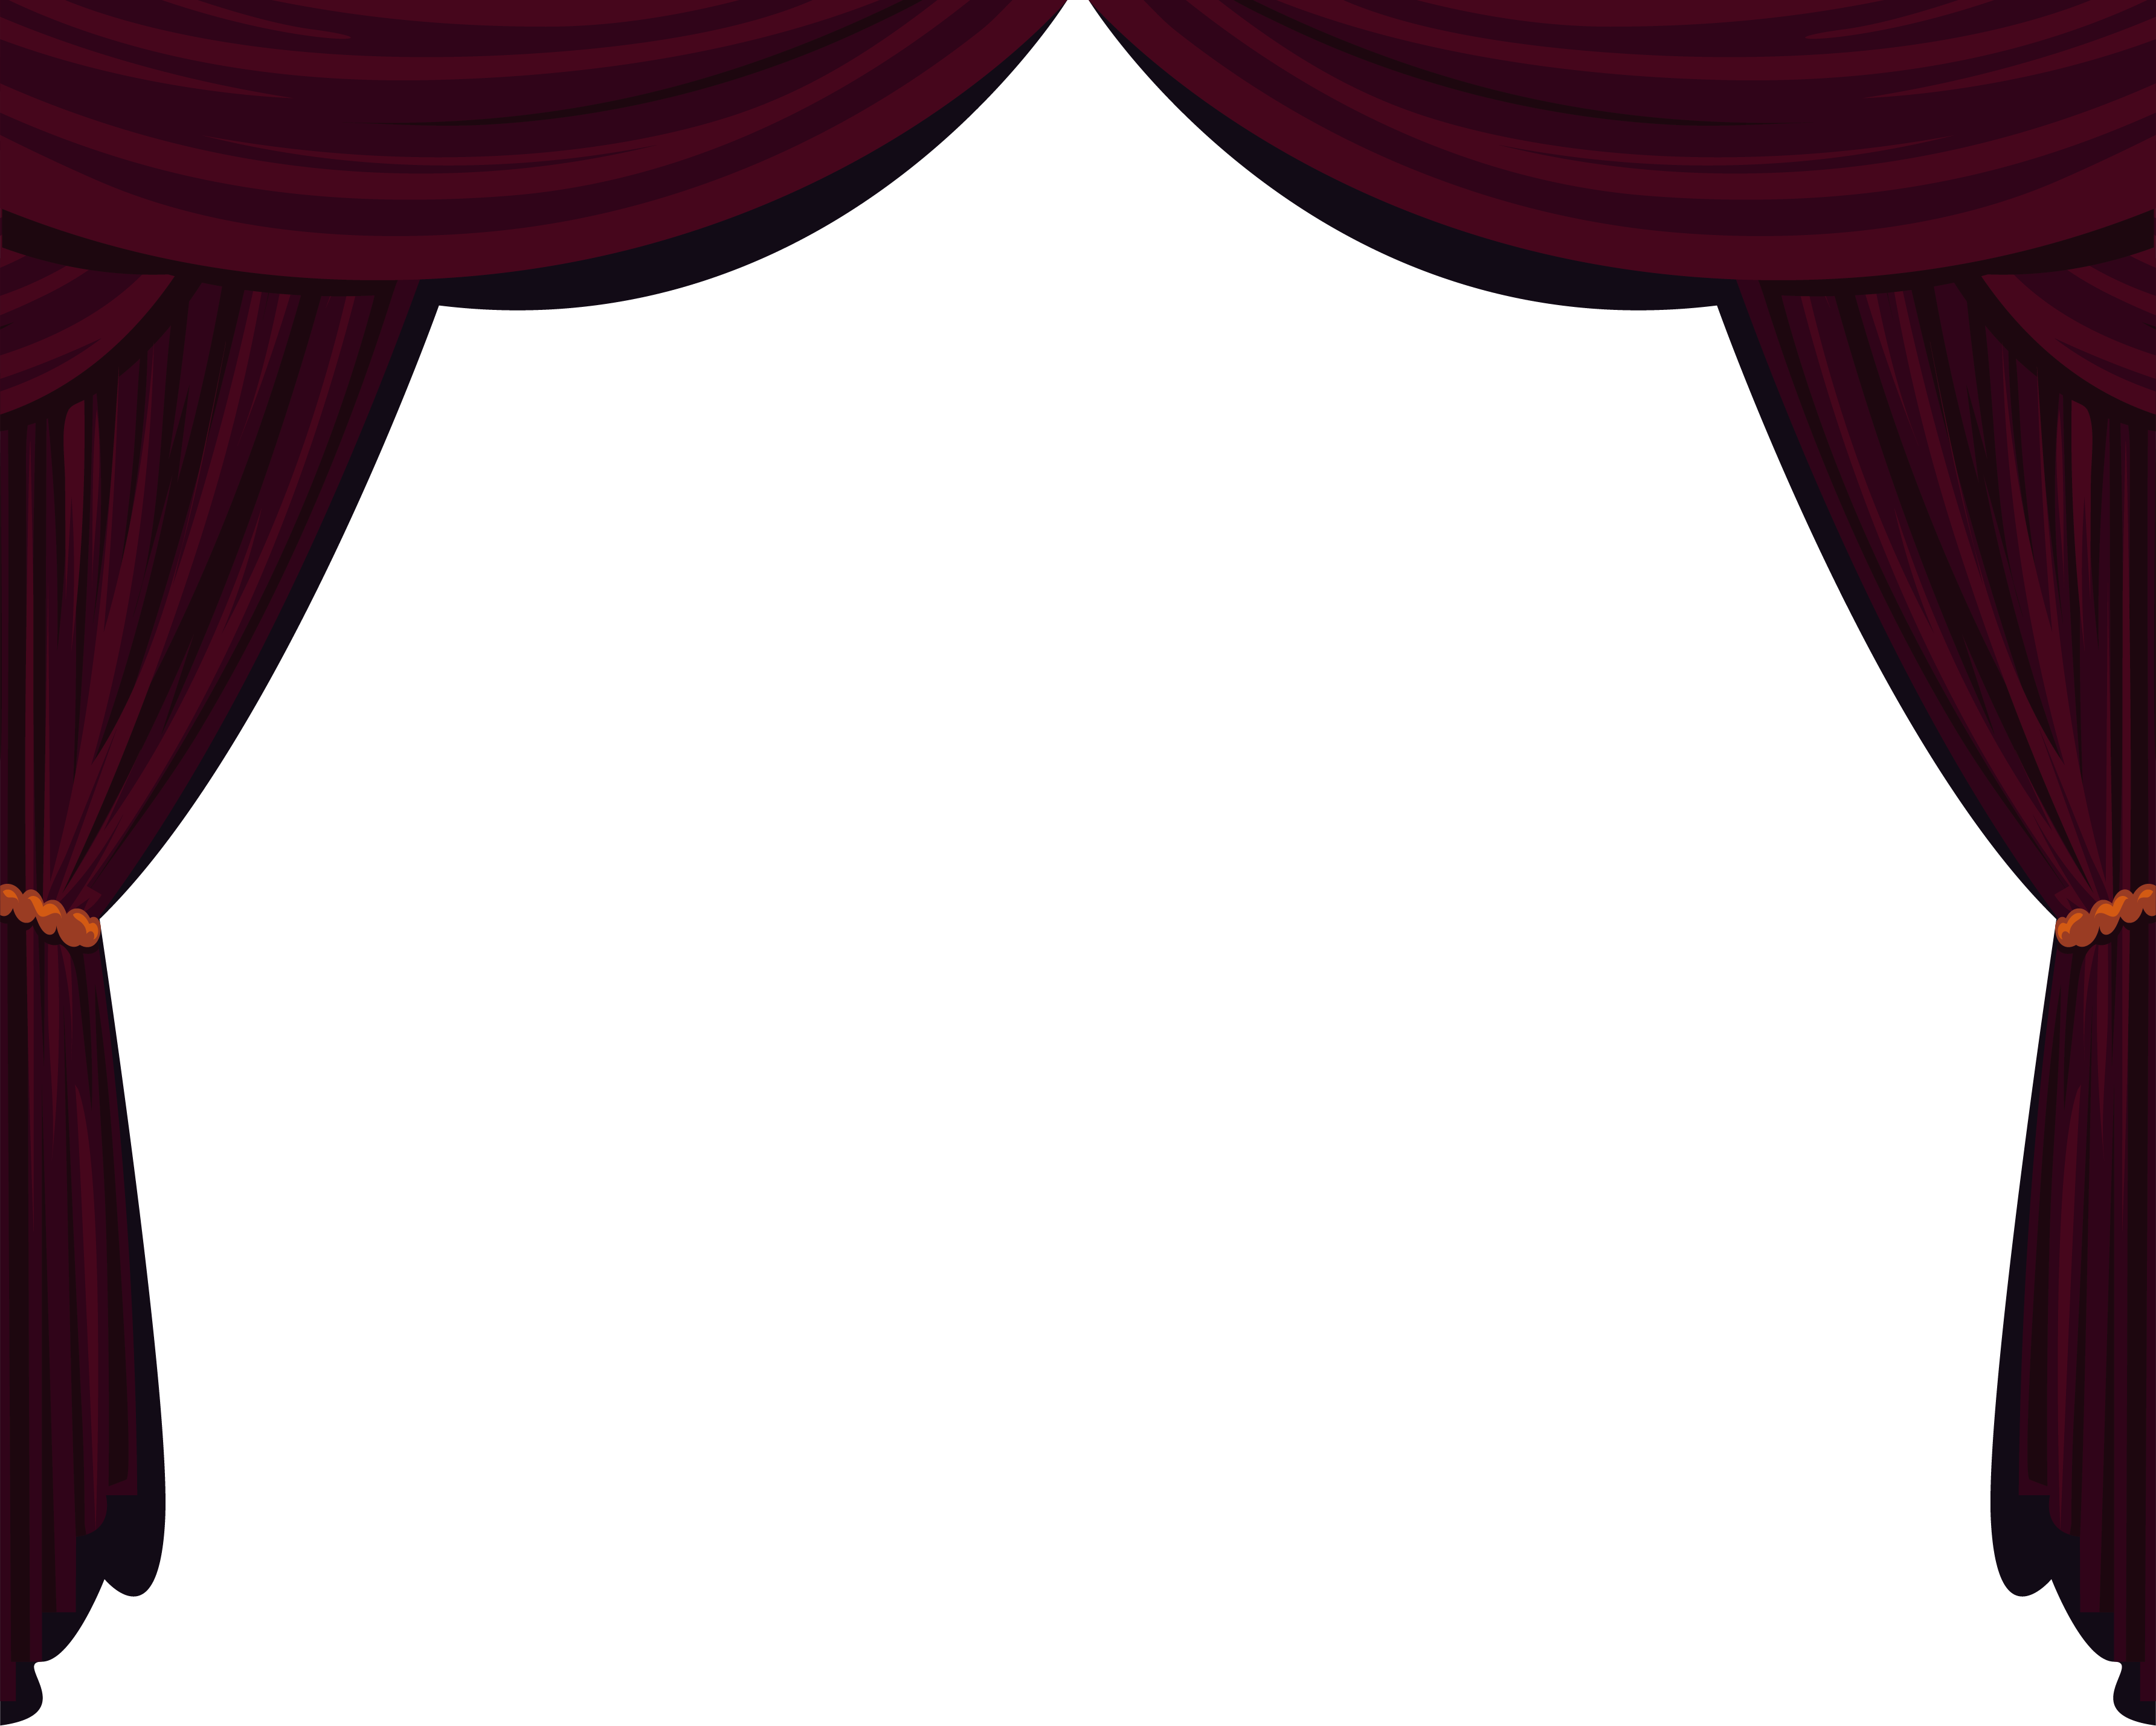 Theatre vector stage. Theater drapes and curtains